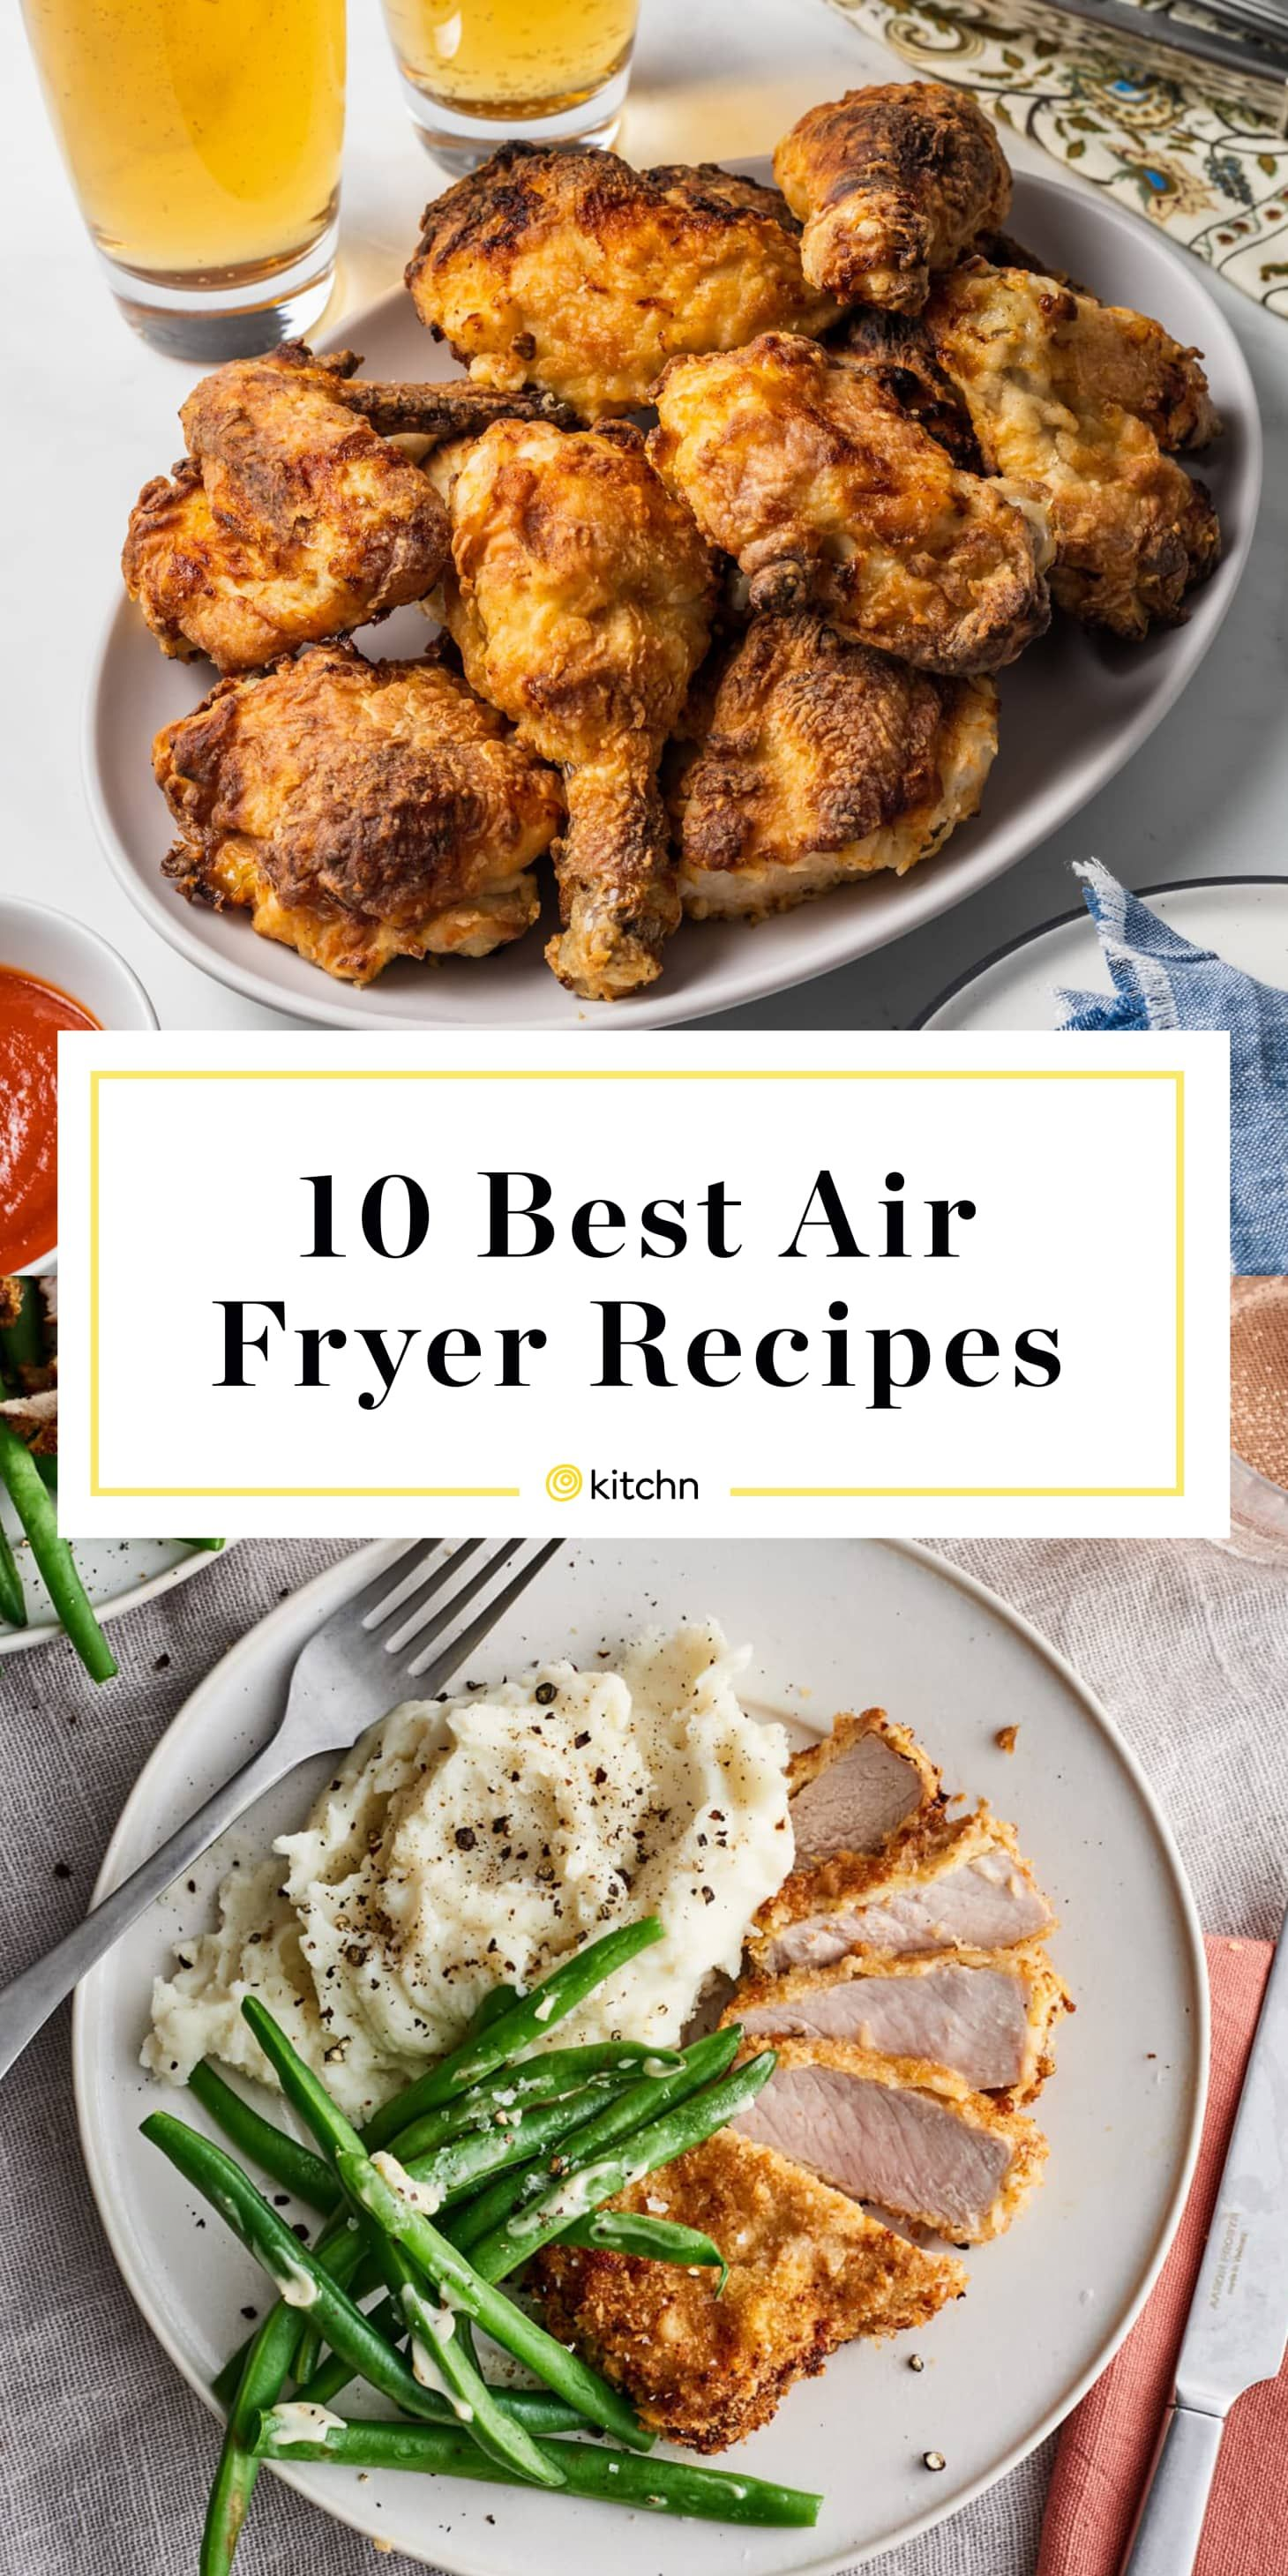 Photo of 10 Recipes That Justify Having an Air Fryer